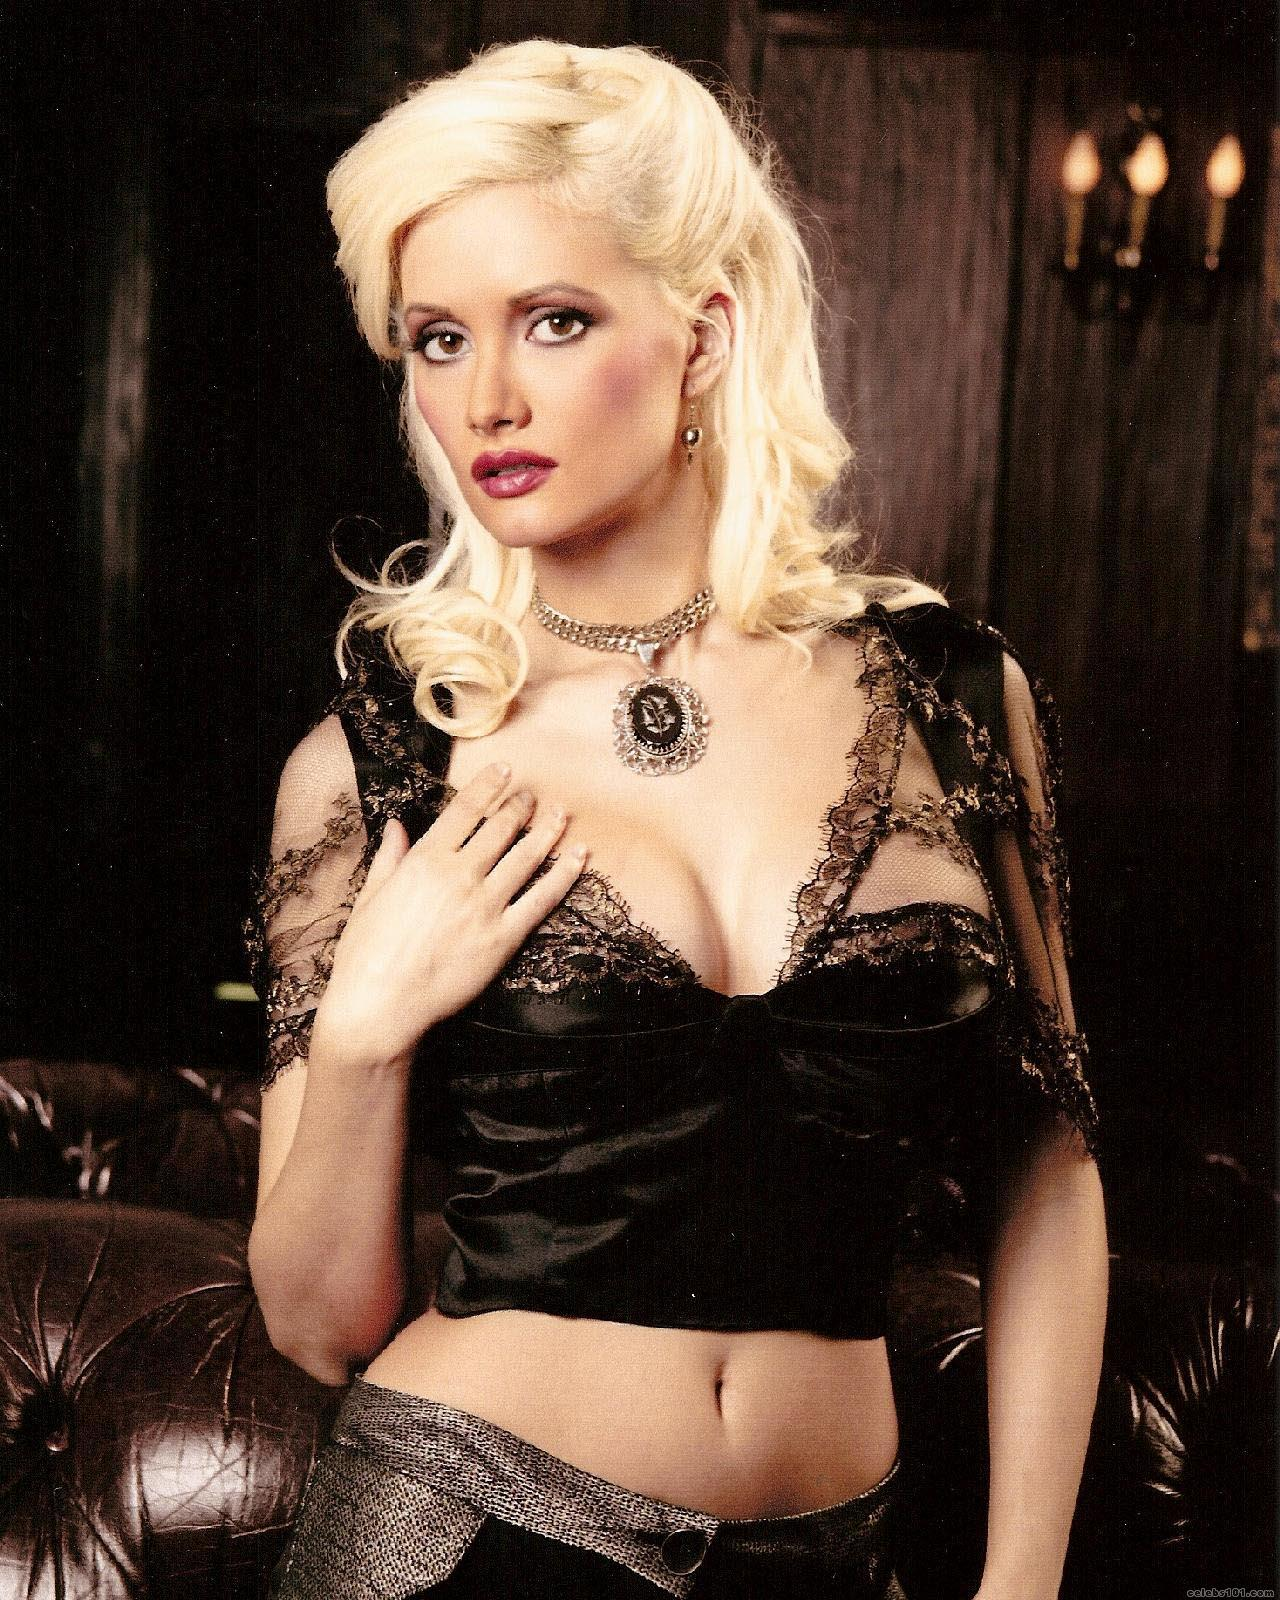 Pictorial holly madison